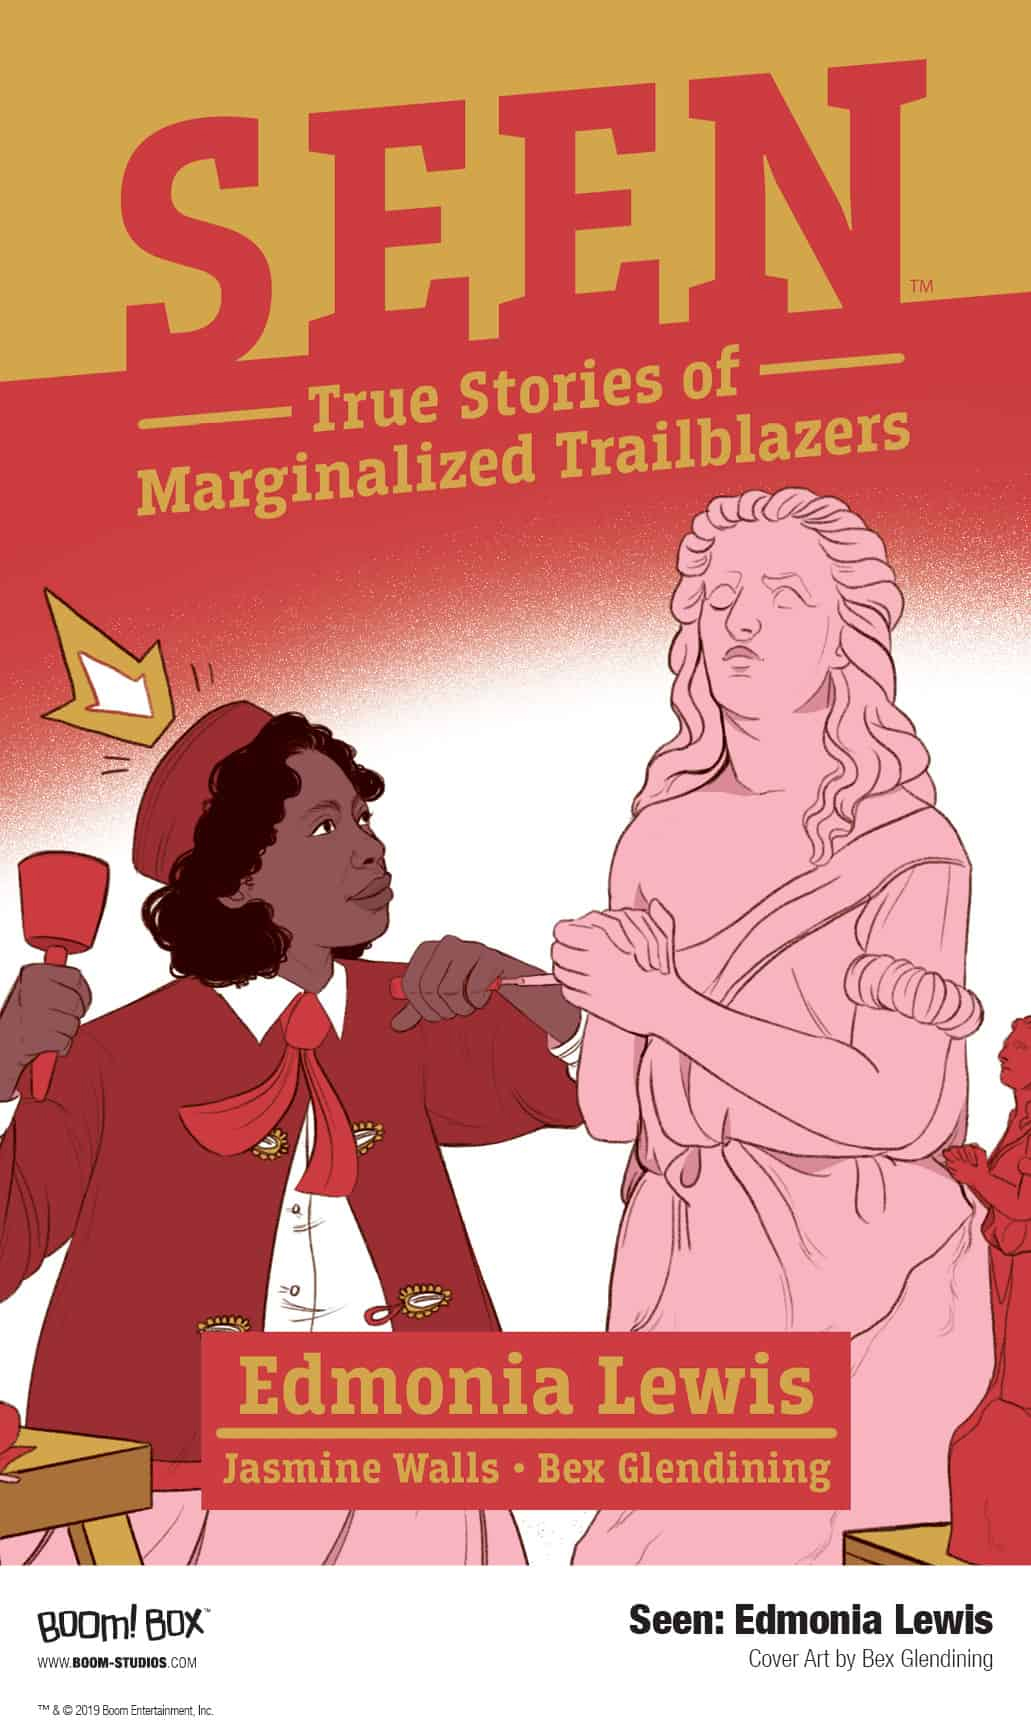 Best Graphic Novels 2020.Discover The True Stories Of Marginalized Trailblazers In